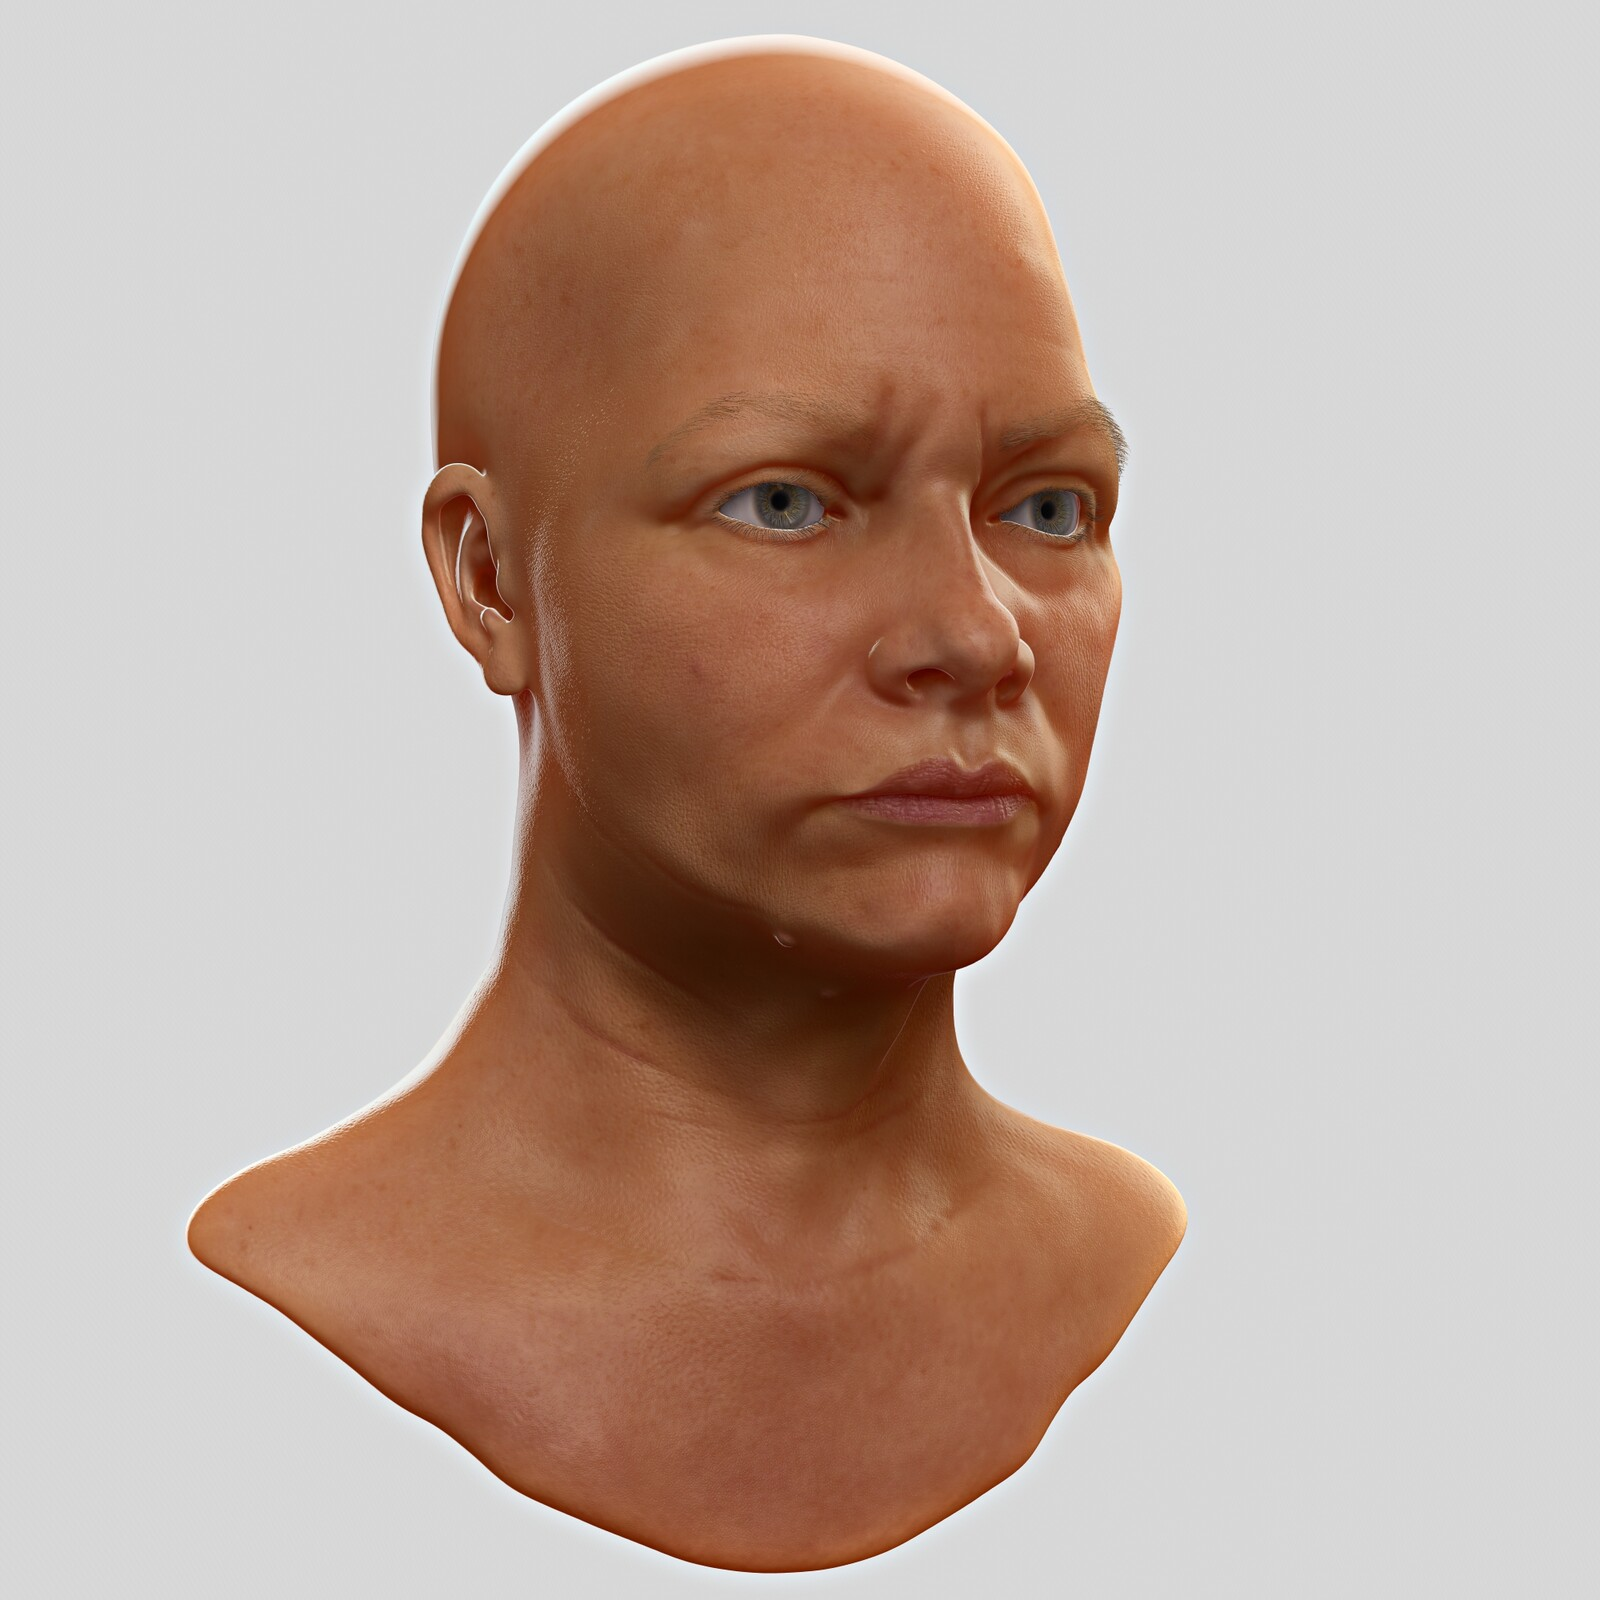 Adjustments to the shape of the face